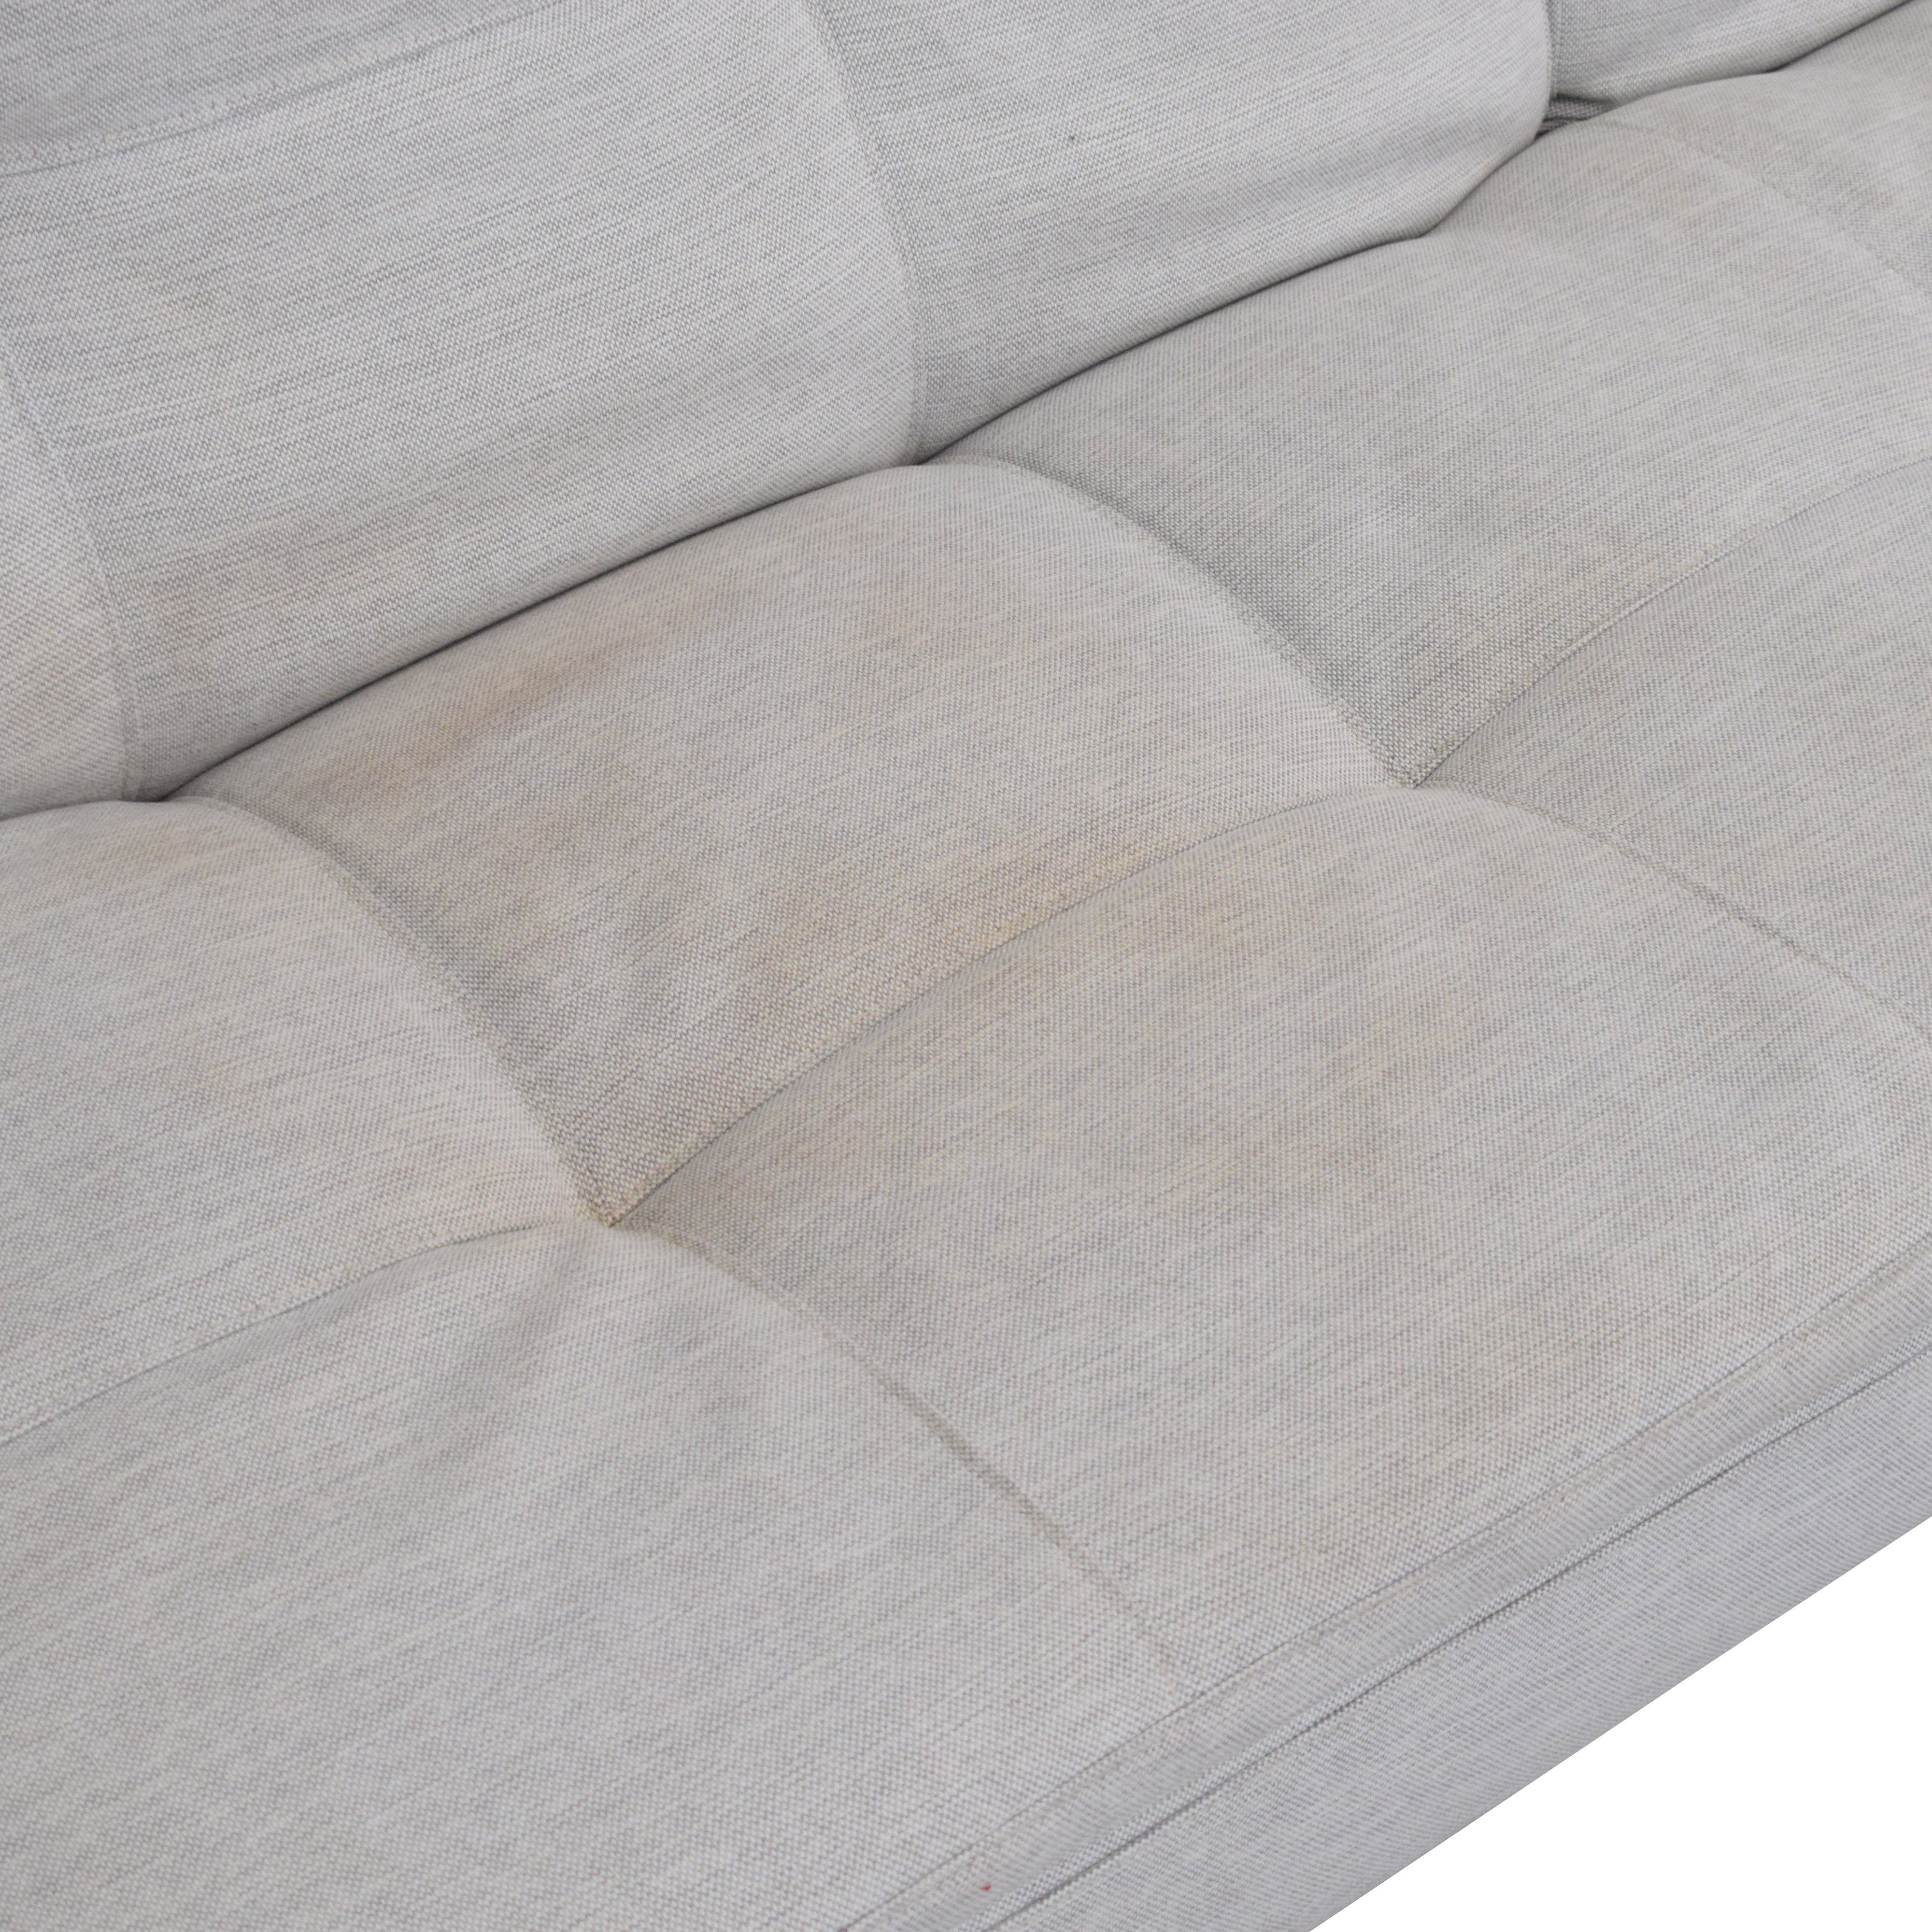 Innovation Living Innovation Living Dublexo Deluxe Sofa Bed with Arms nj